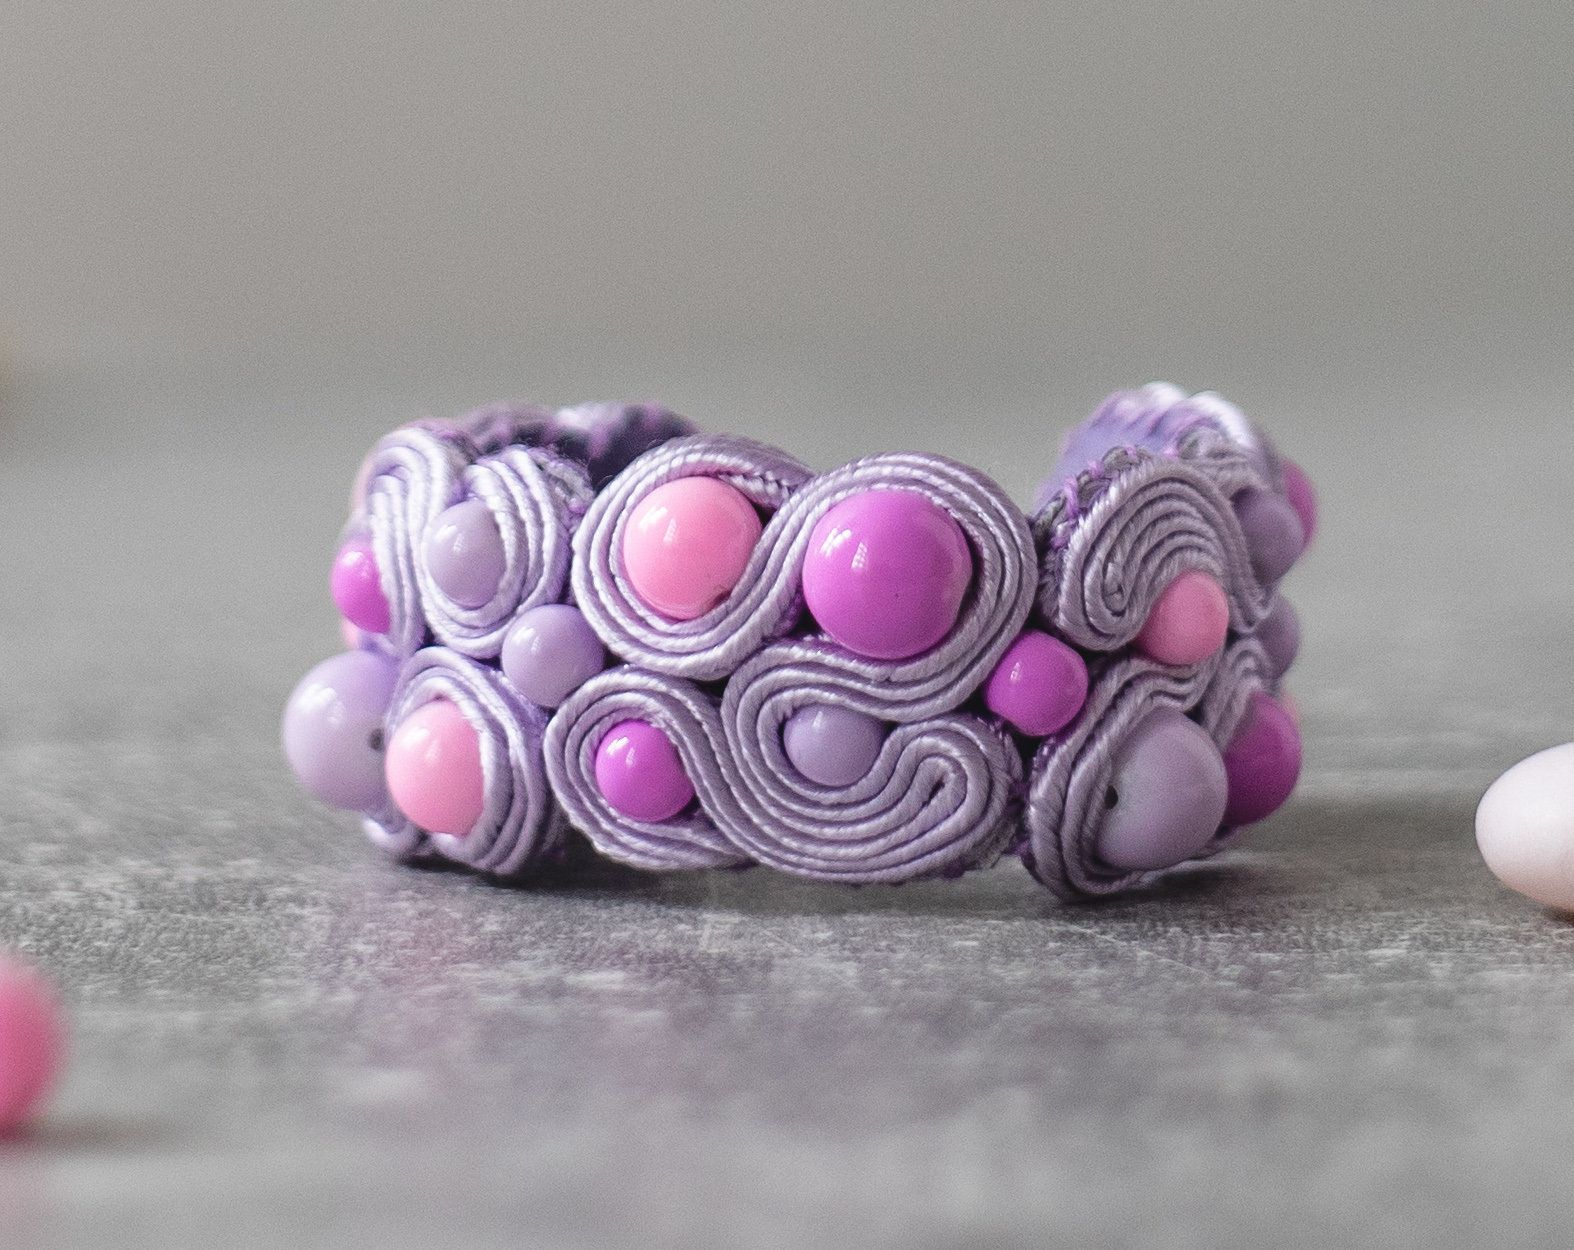 Pastel Bracelet / Soutache Jewelry / Pastel Goth Jewelry / Lavander Purple Bracelet / Vegan Leather / Gift for Her / Casual Goth Store #casualgoth